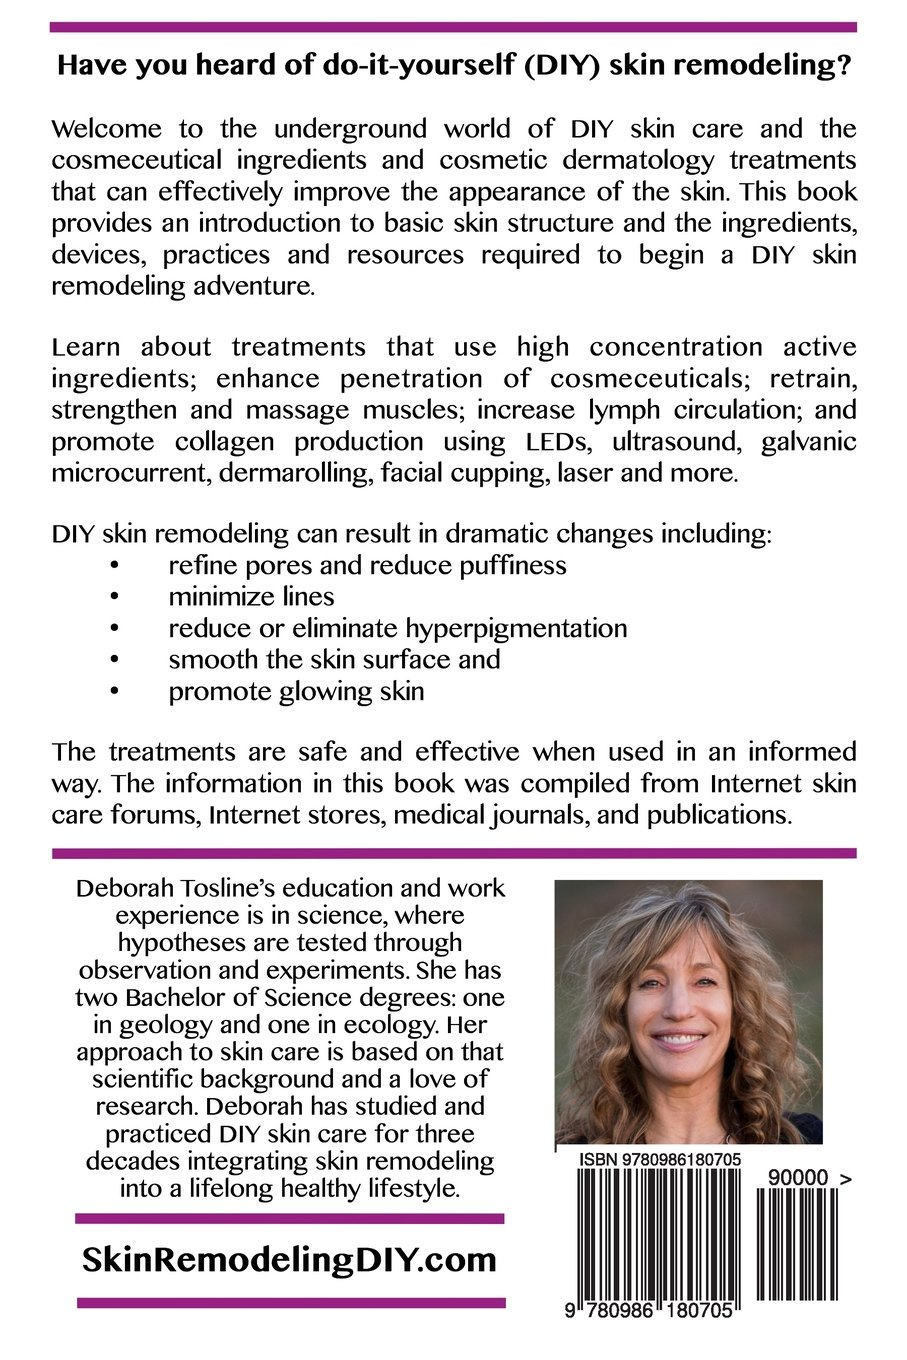 Skin remodeling diy an introduction to the underground world of do skin remodeling diy an introduction to the underground world of do it yourself skin care deborah tosline 9780986180705 amazon books solutioingenieria Choice Image